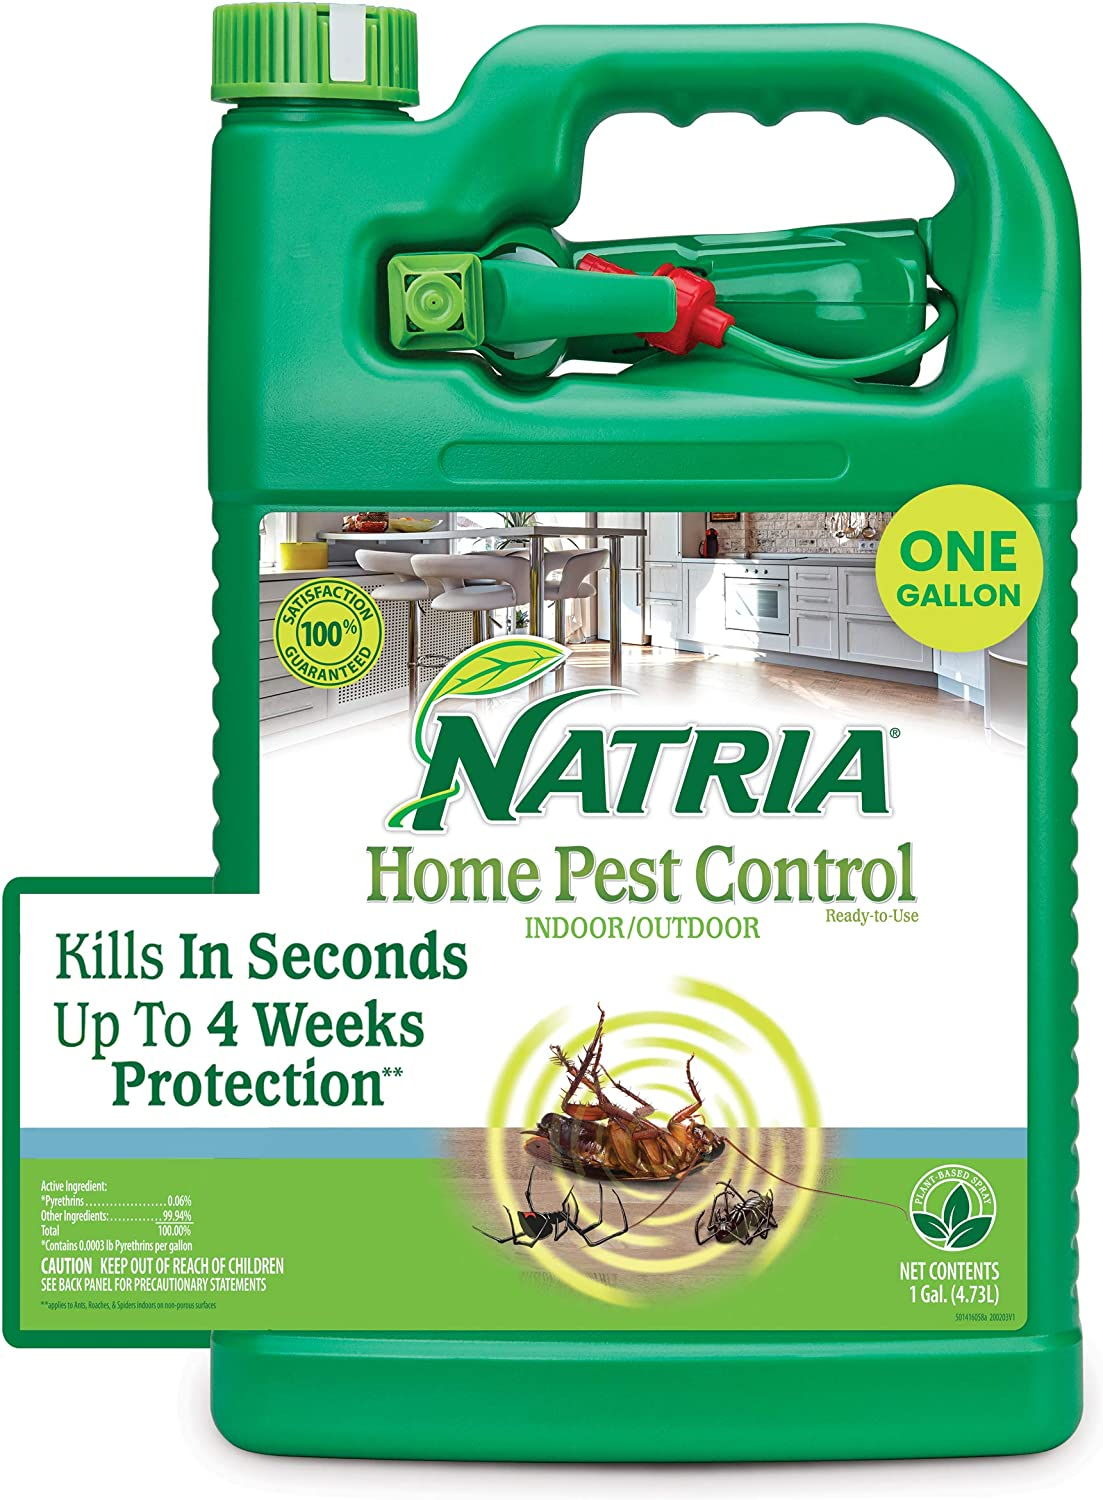 Natria 706261A Home Pest Control Bug Killer for Indoor and Outdoor, 1-Gallon, Ready-to-Use